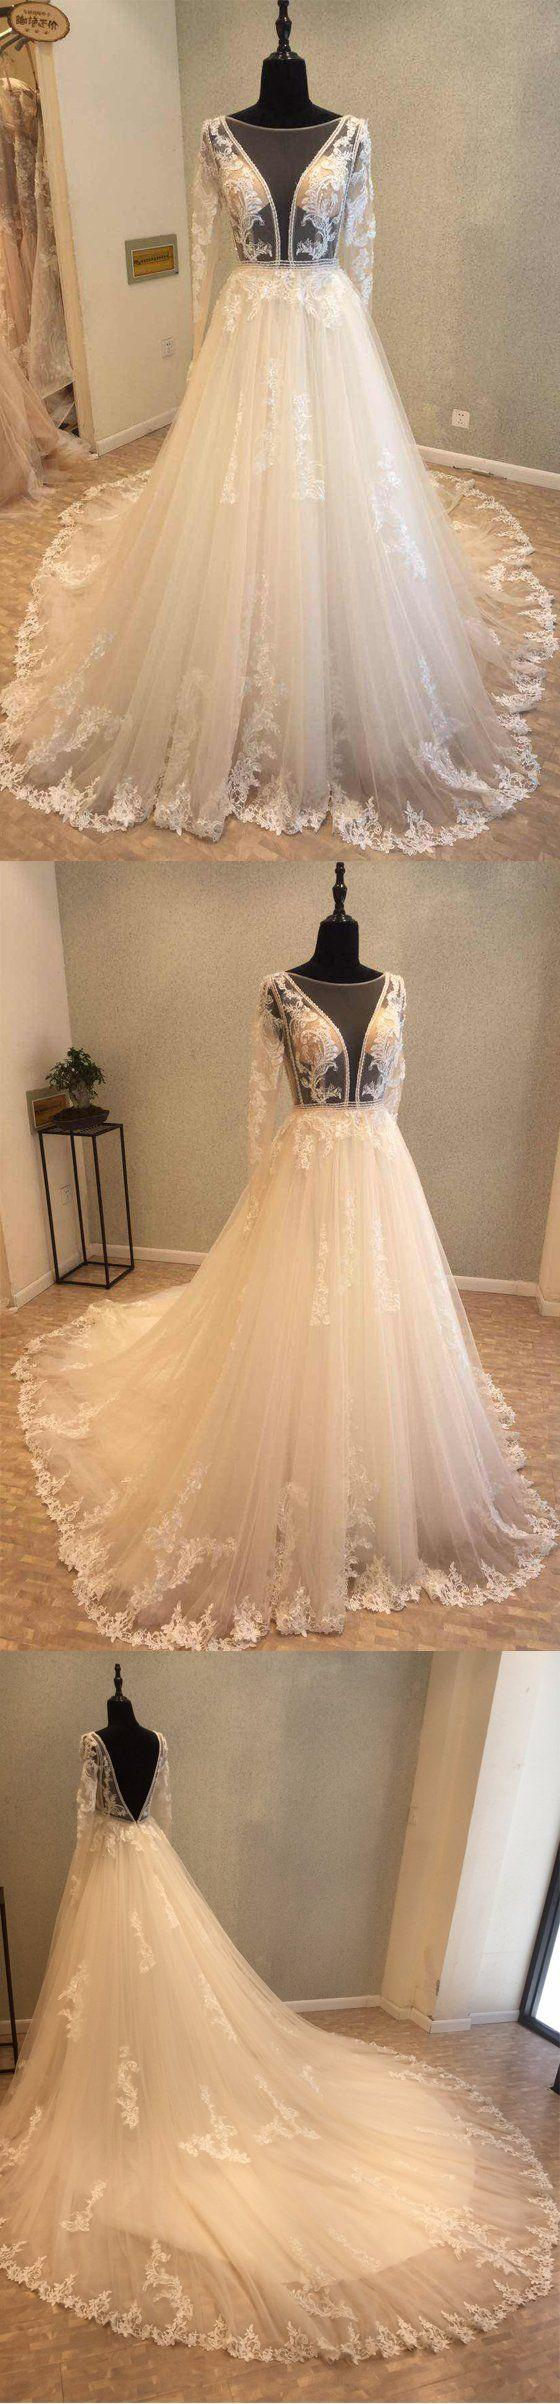 Mariage - Beautiful Long Sleeves V Back Tulle Applique Affordable Long Wedding Dress, WG1204